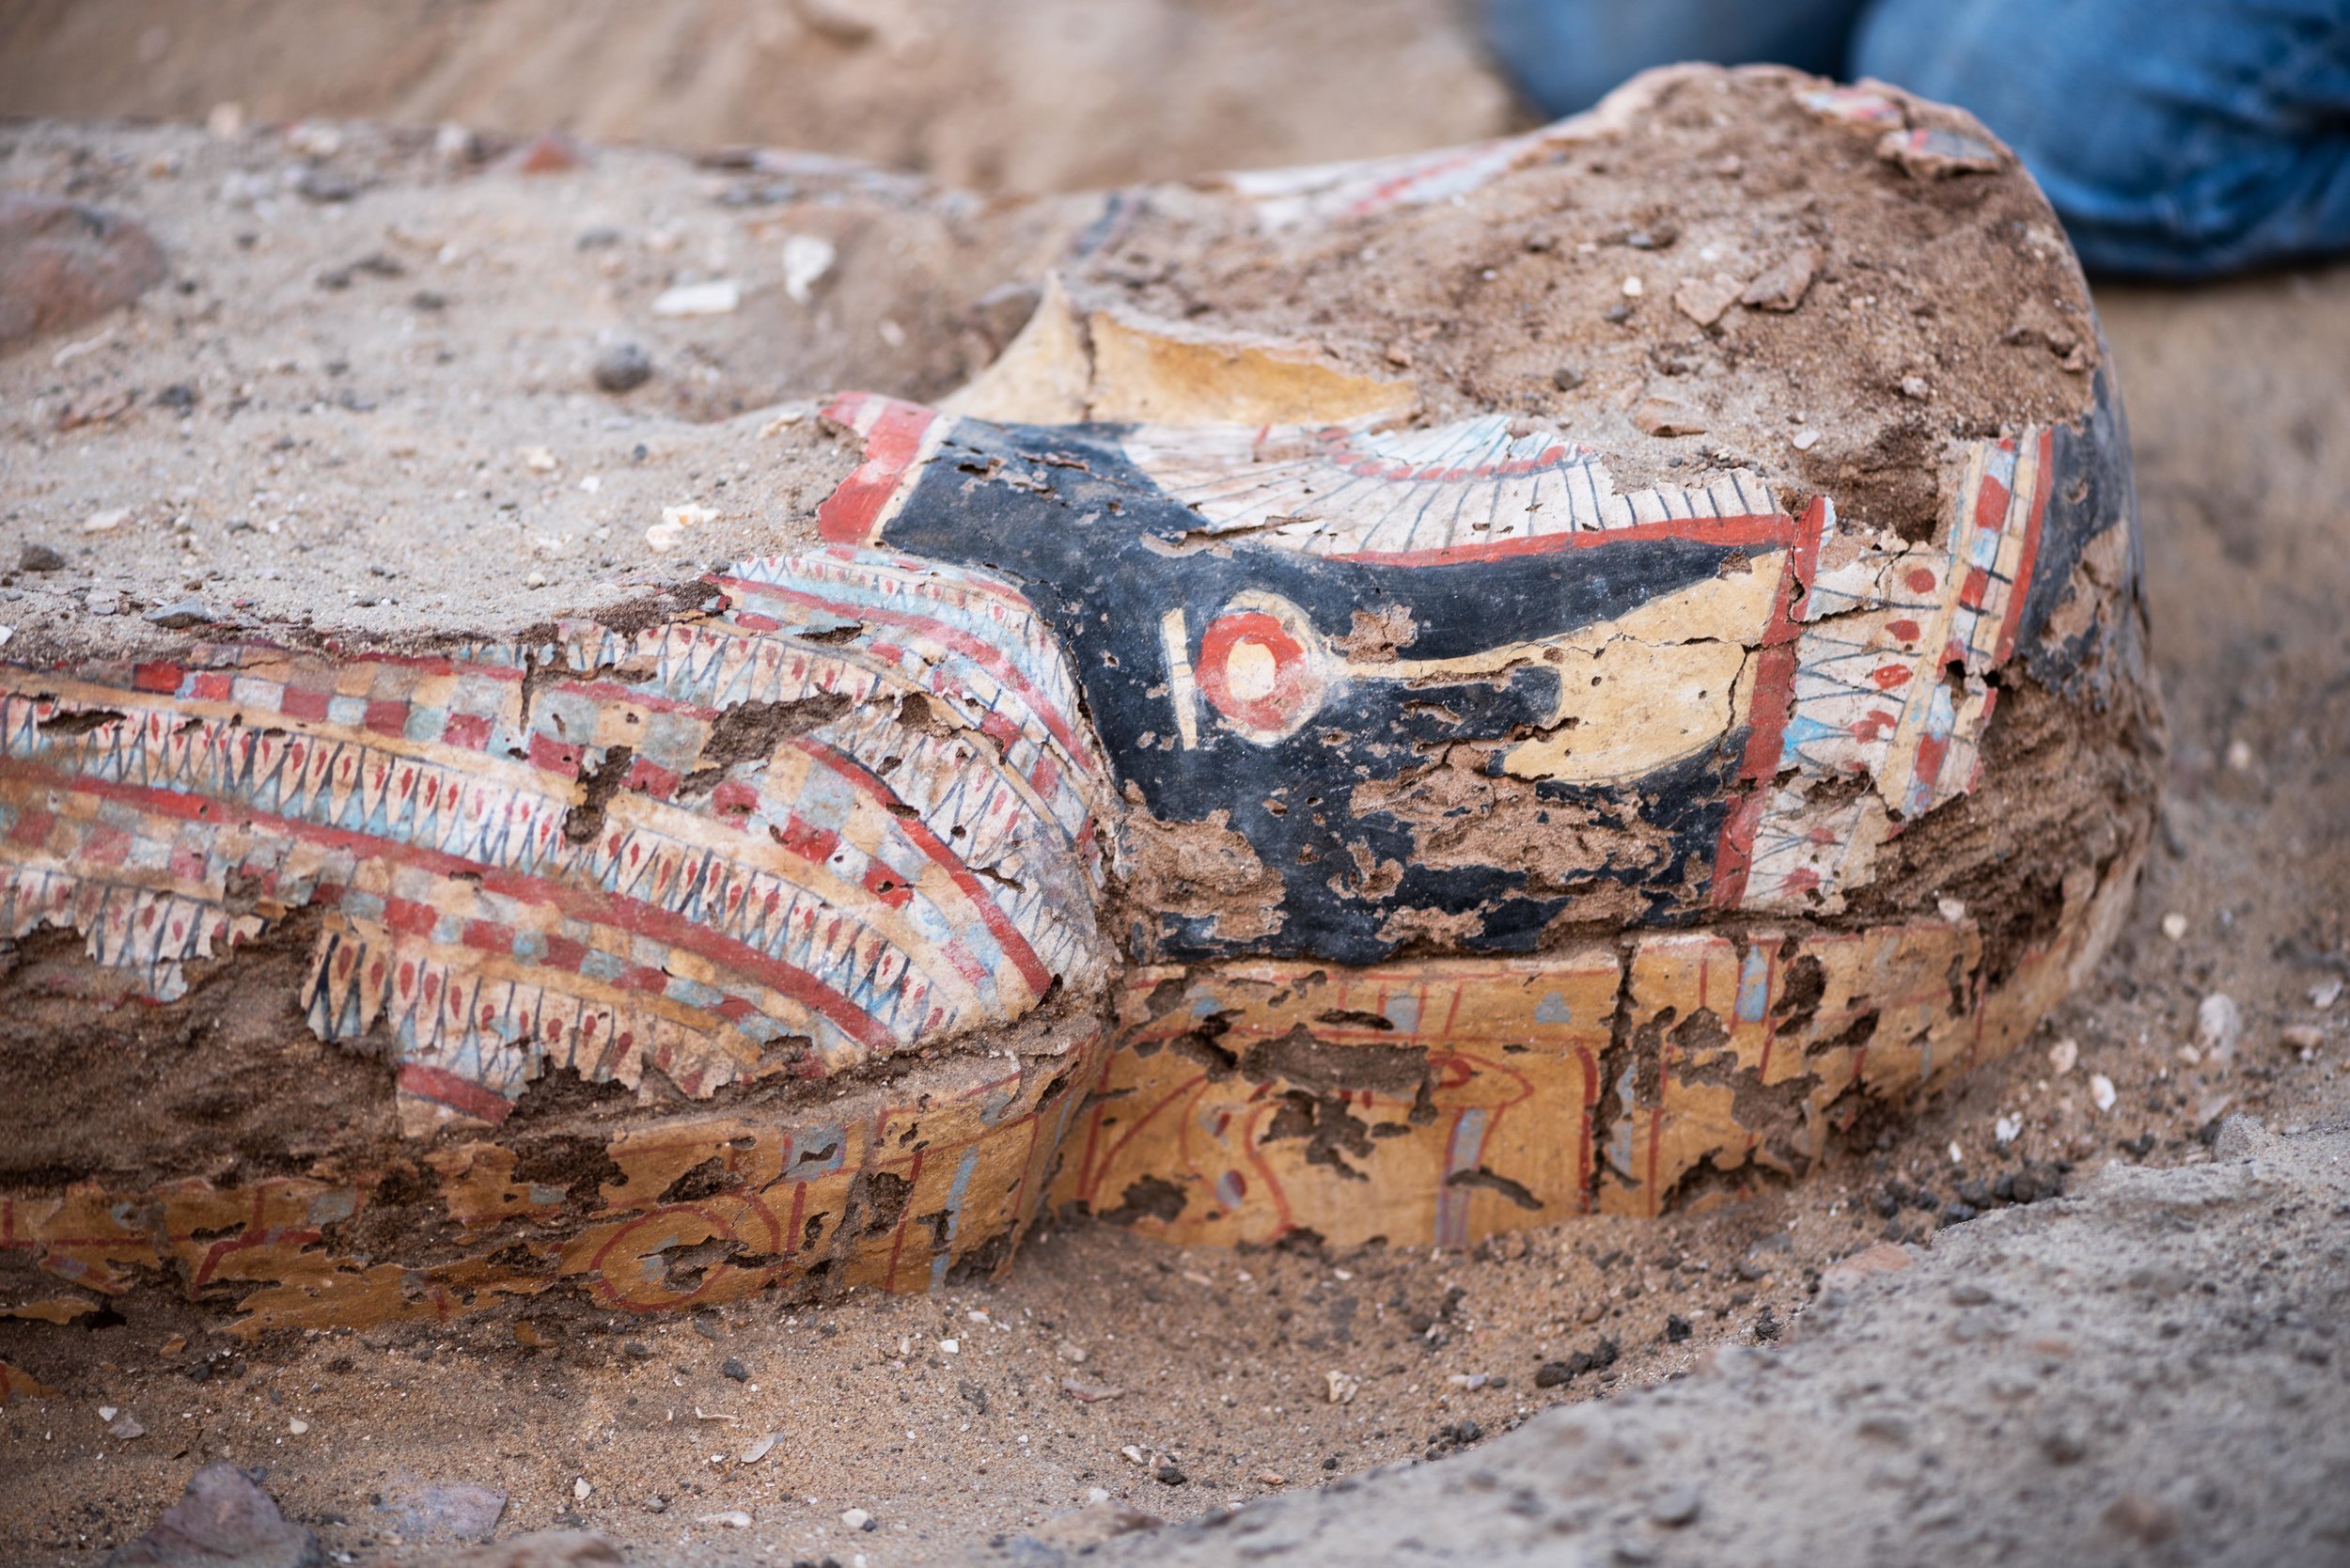 Fig. 3. Painted coffin of the late Ramesside or Third Intermediate Period found just outside the east corner gateway of the Shunet el-Zebib earlier this week. This elaborate burial is exceptional for the quality of its painted decoration, but even more for having survived at all — the wood of the original coffin has been completely devoured by insects, leaving behind only the extremely fragile painted surface of a once extraordinarily fine coffin to be documented, admired, and preserved. Photo: Ayman Damarany / North Abydos Expedition © 2019